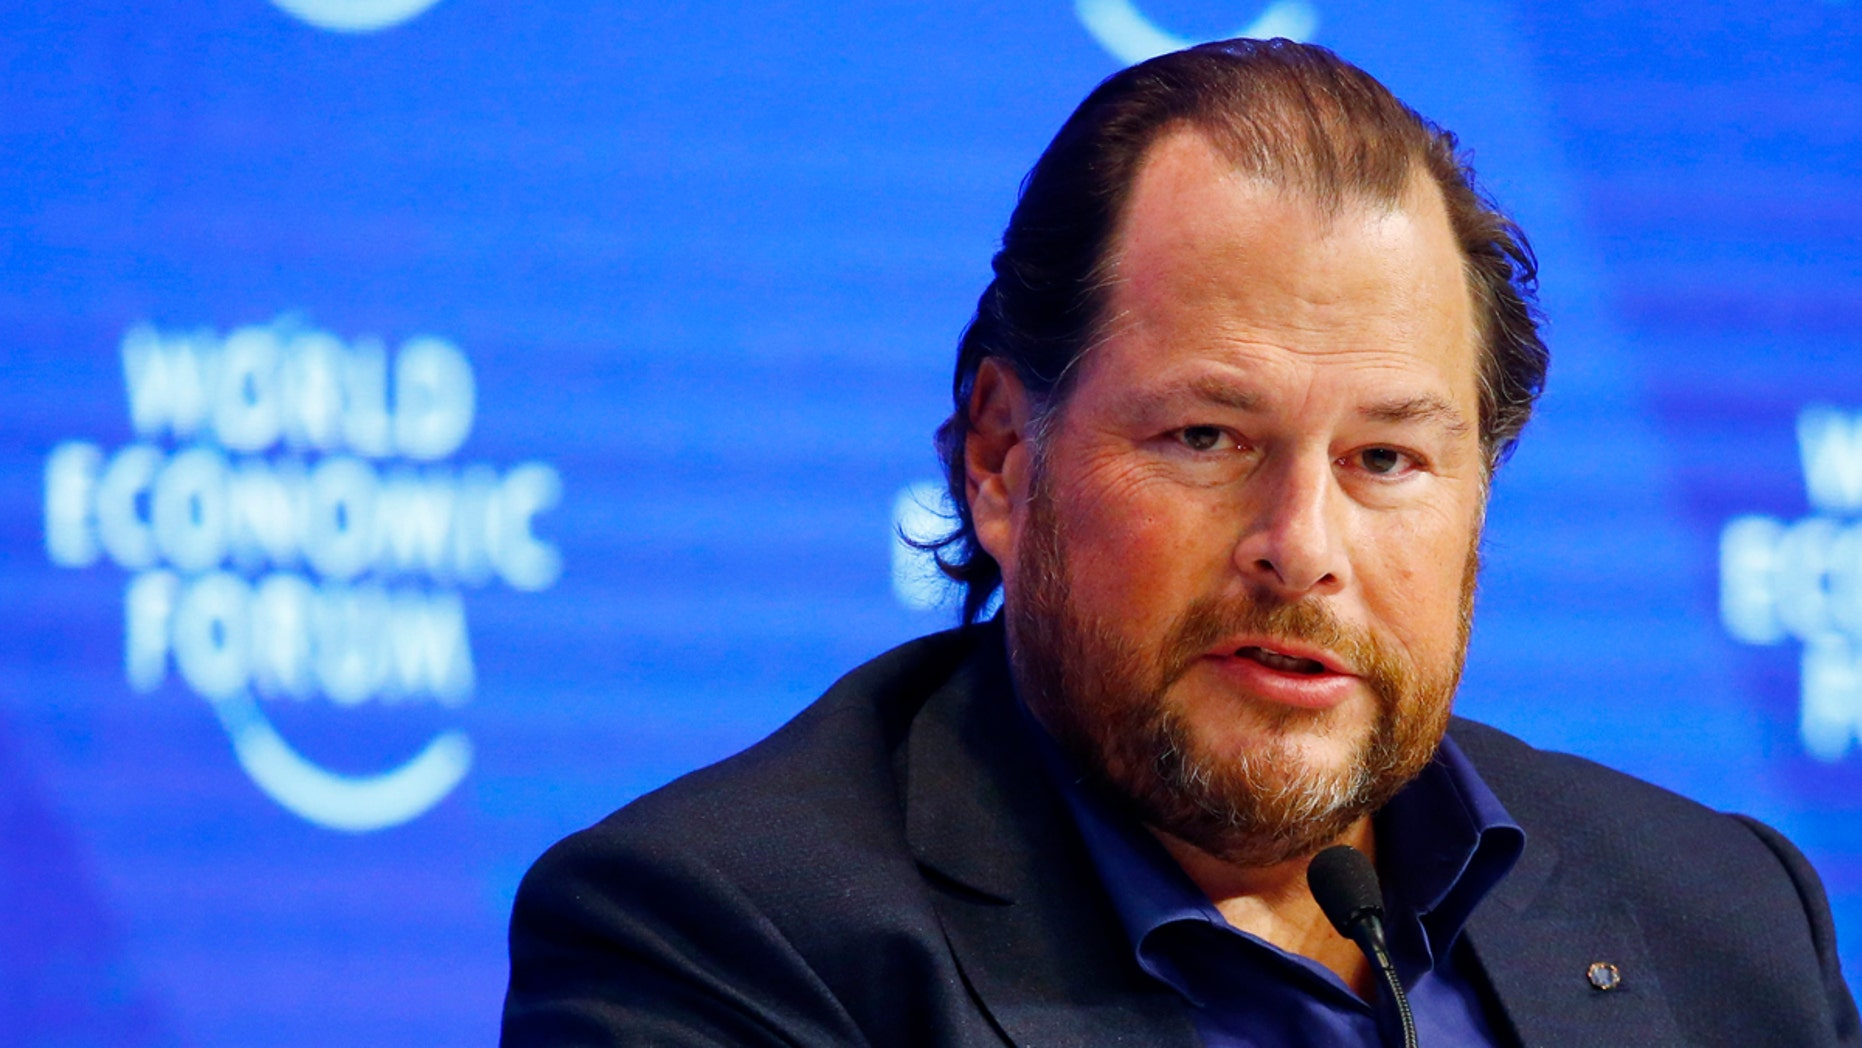 Marc Benioff, Chairman and CEO of Salesforce attends the annual meeting of the World Economic Forum (WEF) in Davos, Switzerland, January 17, 2017. REUTERS/Ruben Sprich - LR1ED1H1DWS0L